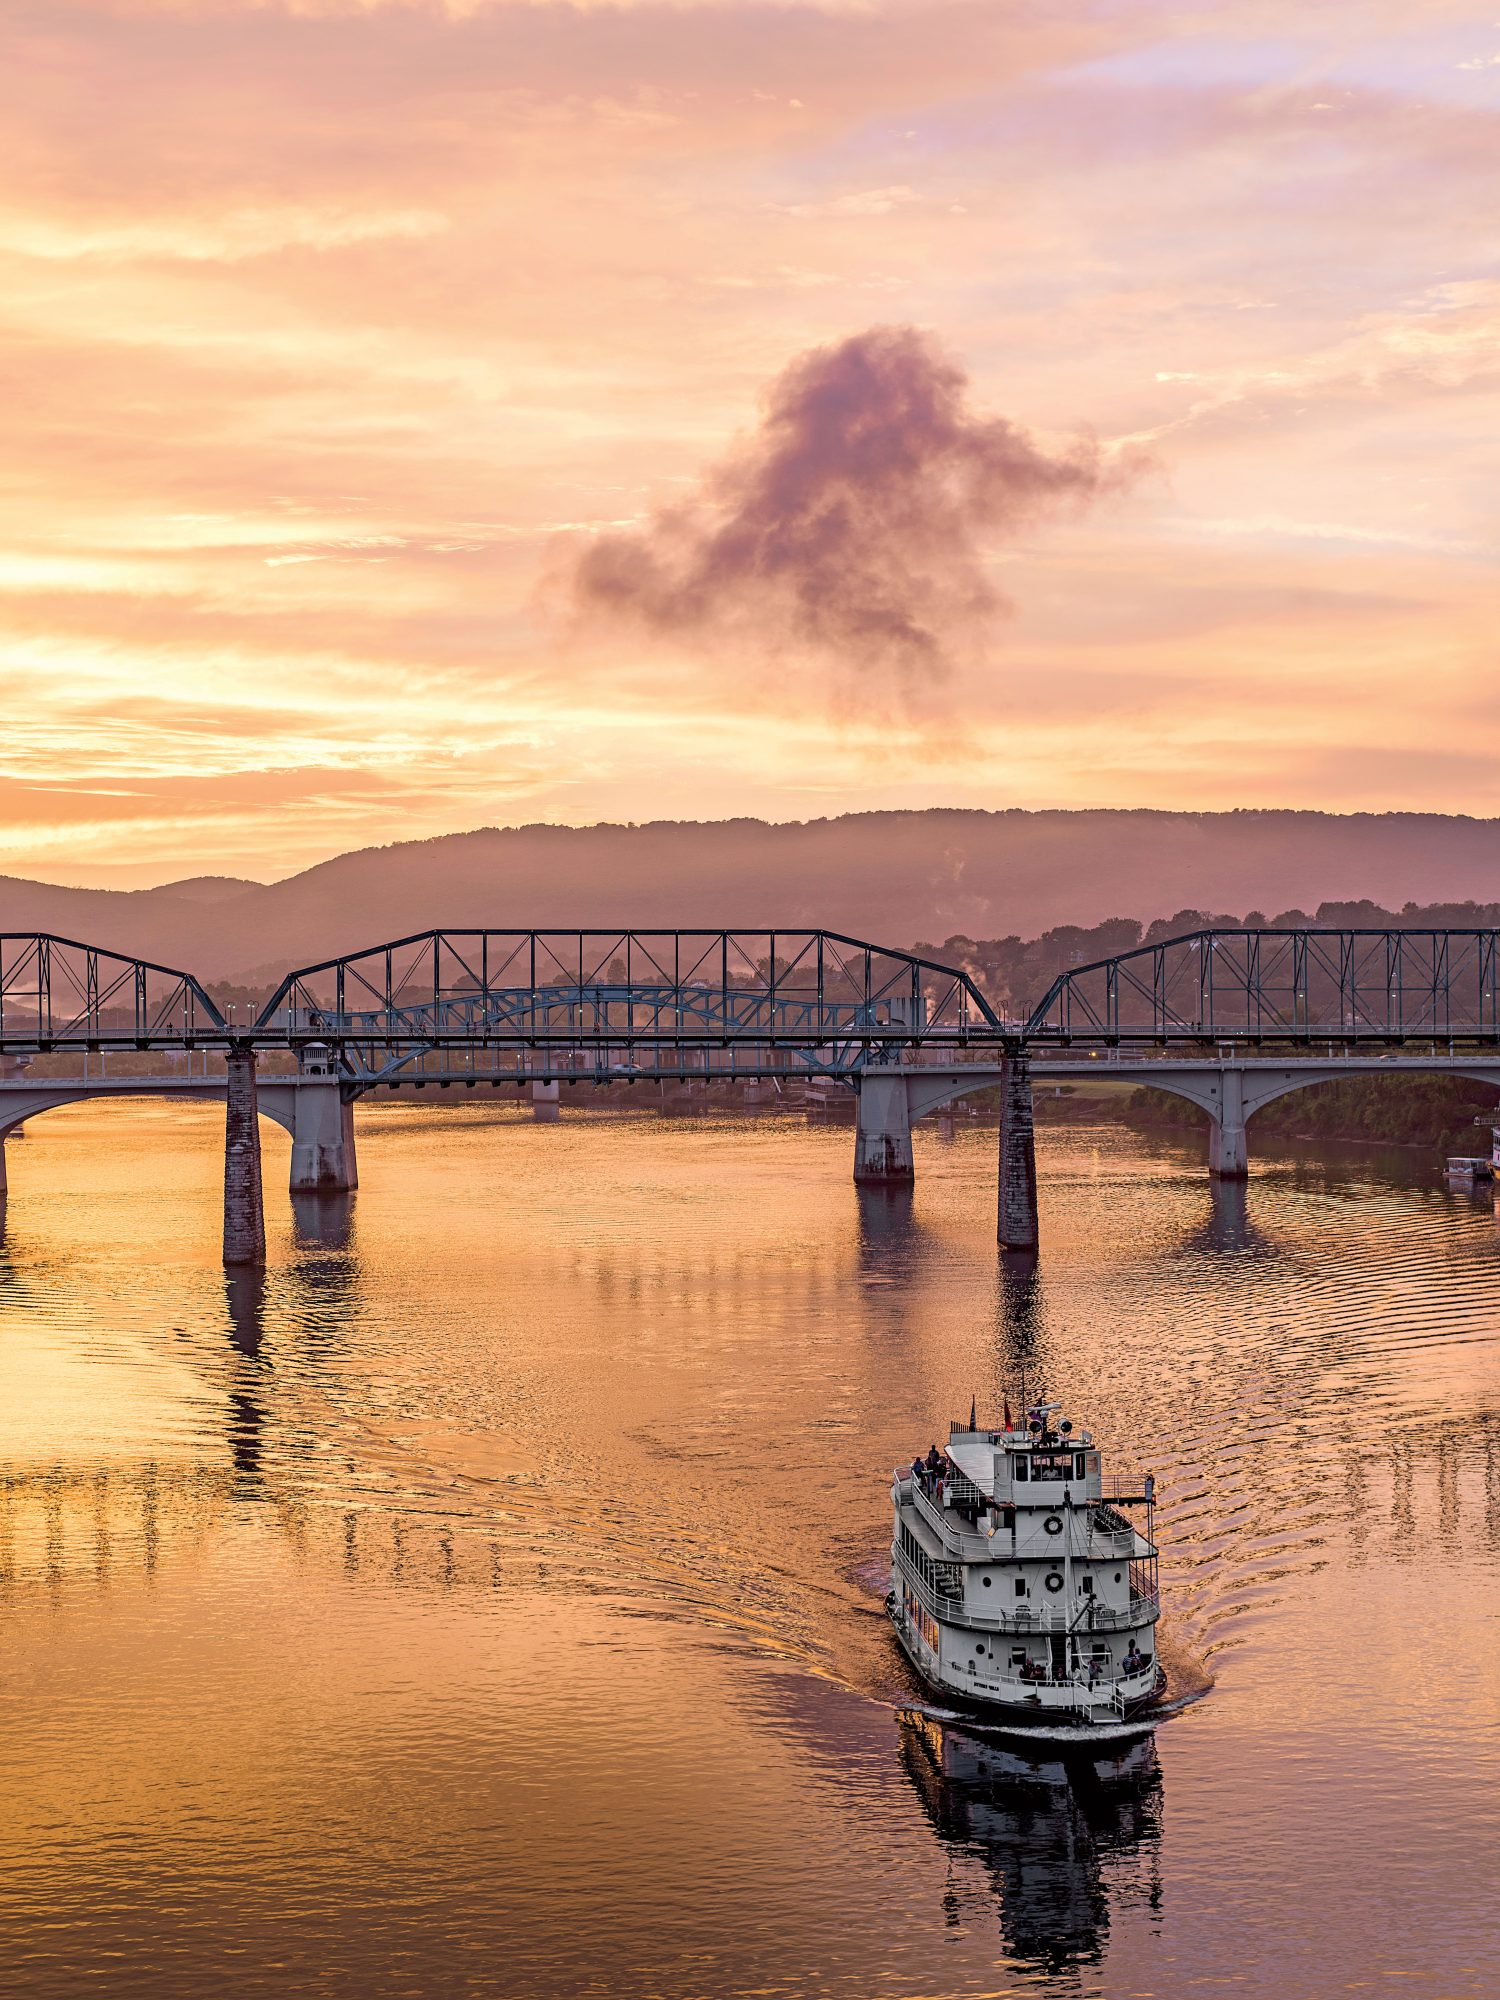 13. Chattanooga, Tennessee